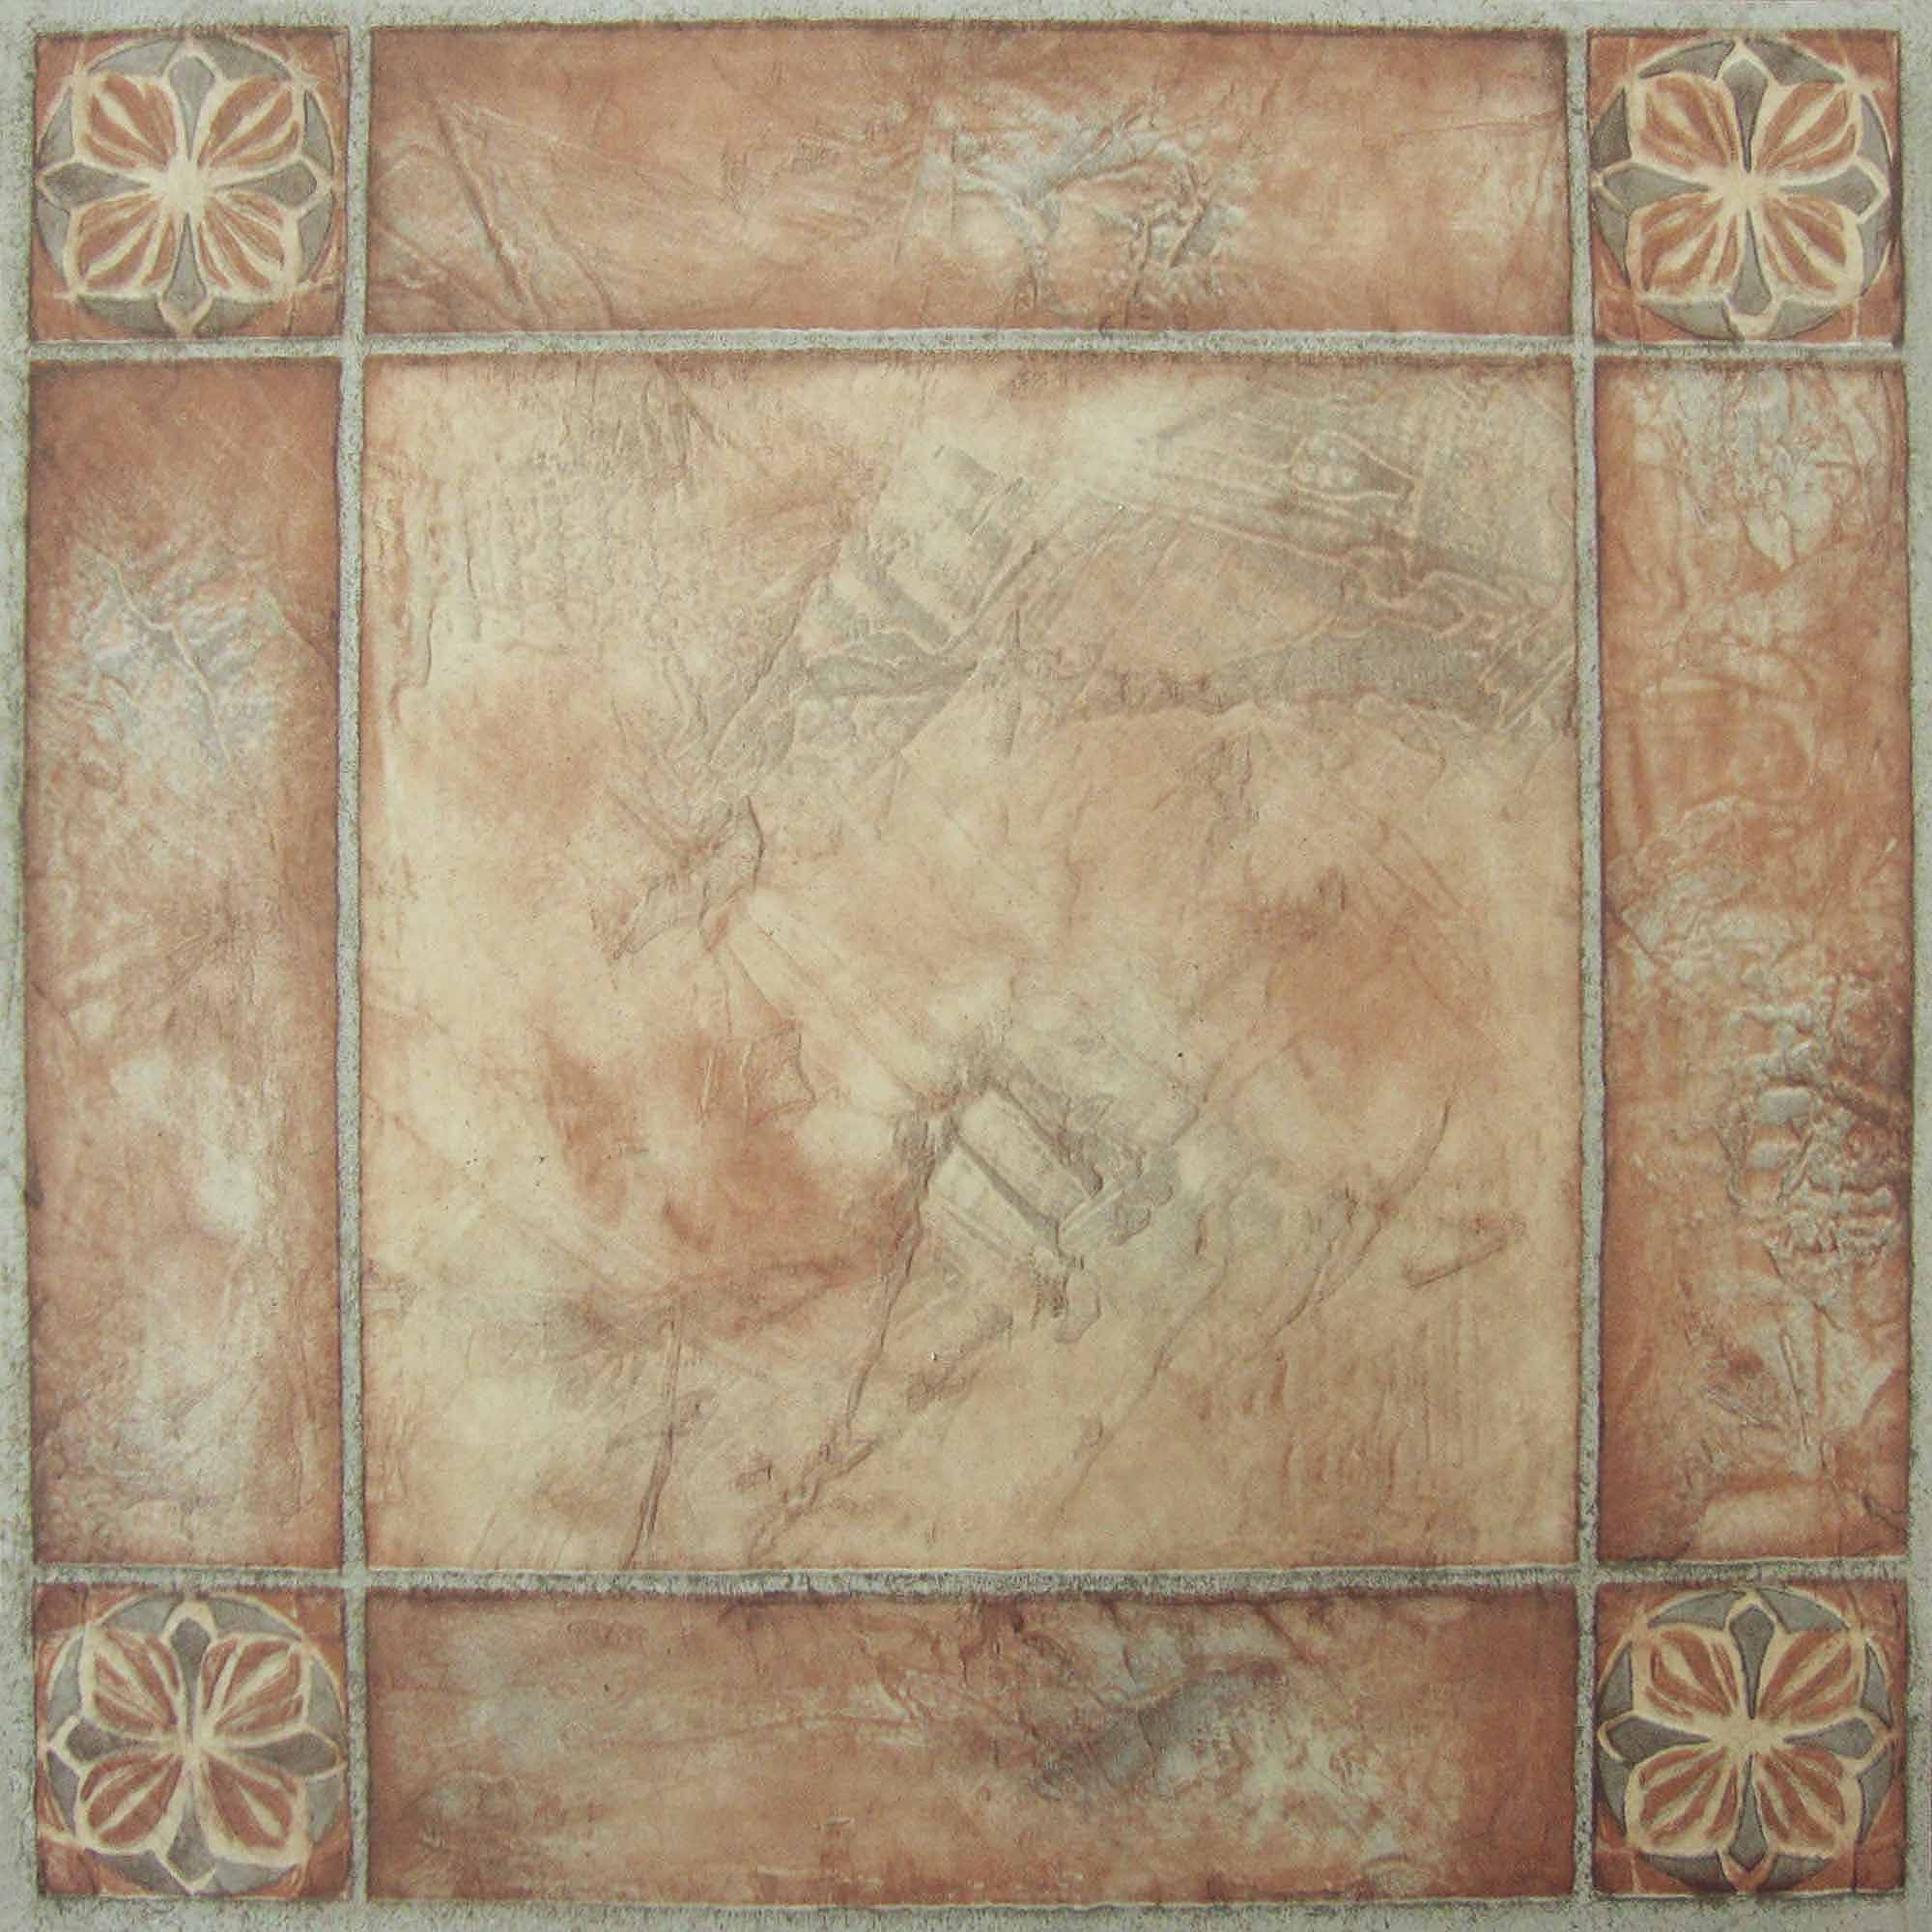 Vinyl floor tiles self stick with progress and innovations in vinyl floor tiles self stick with progress and innovations in home design along with expanding dailygadgetfo Images